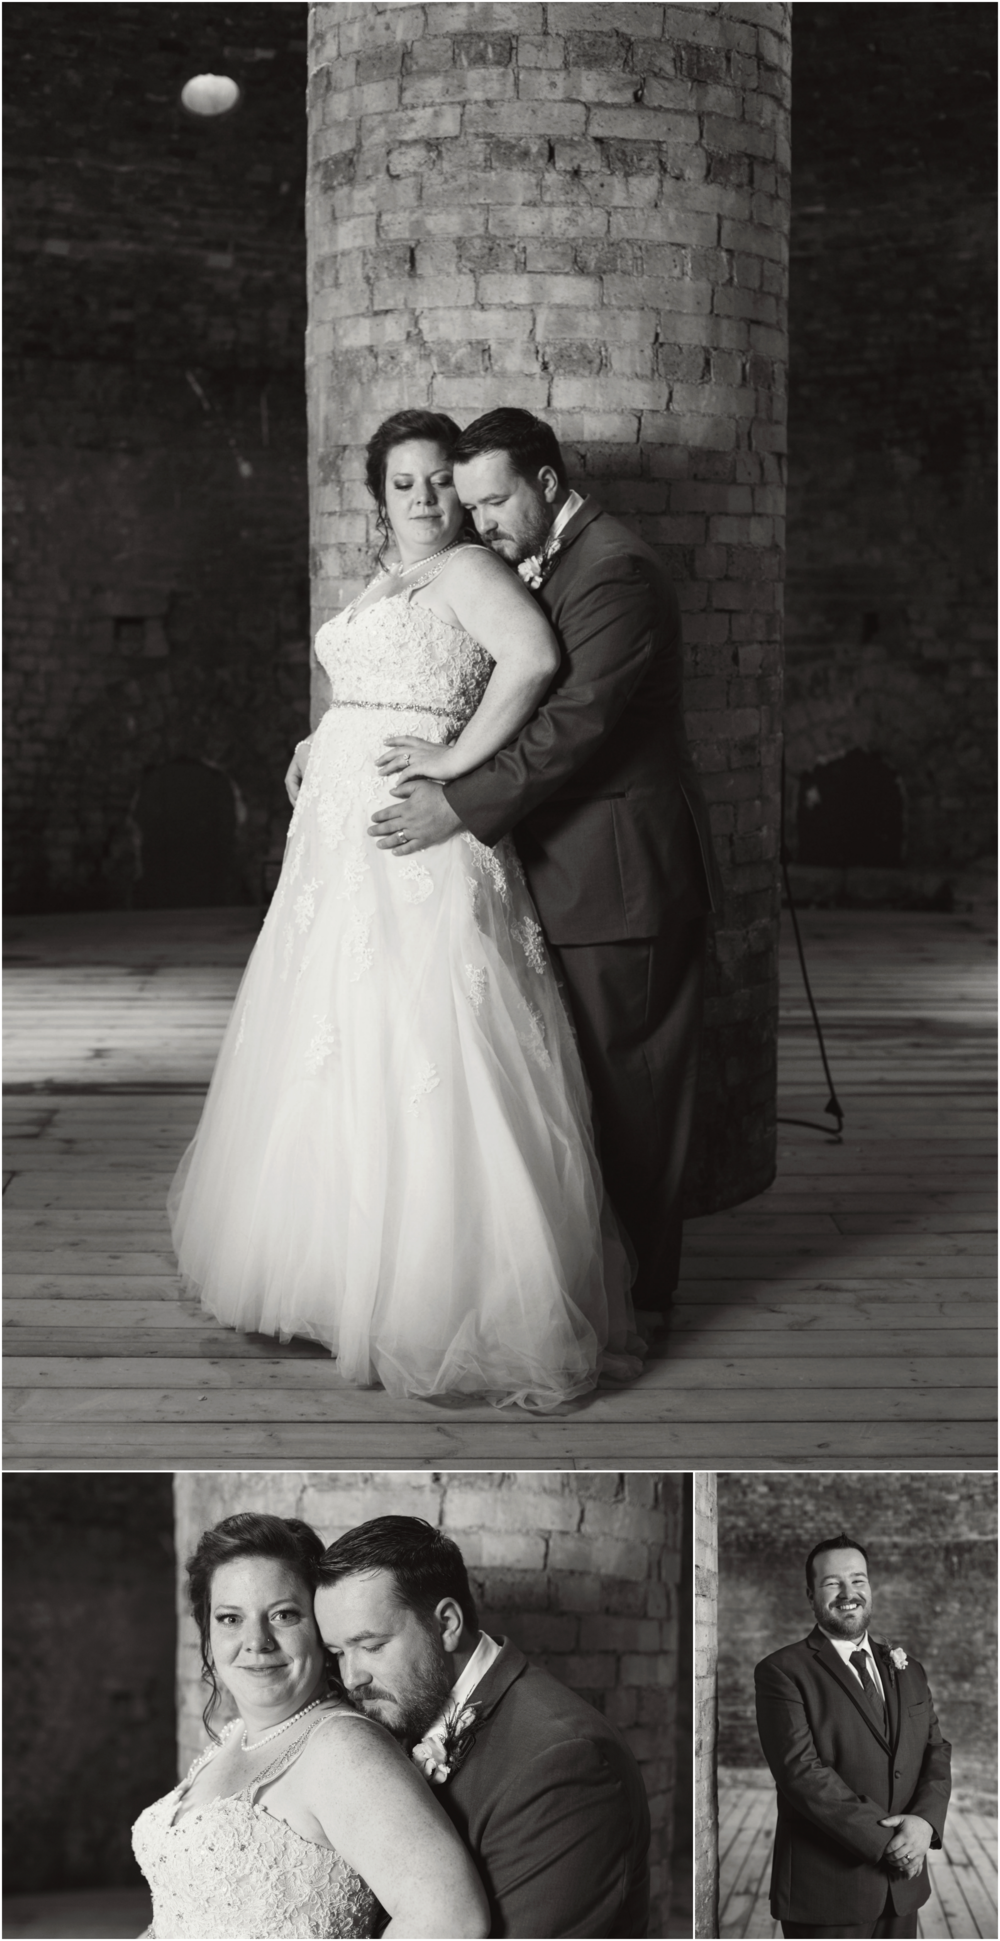 medalta_wedding_medicine_hat_17.png